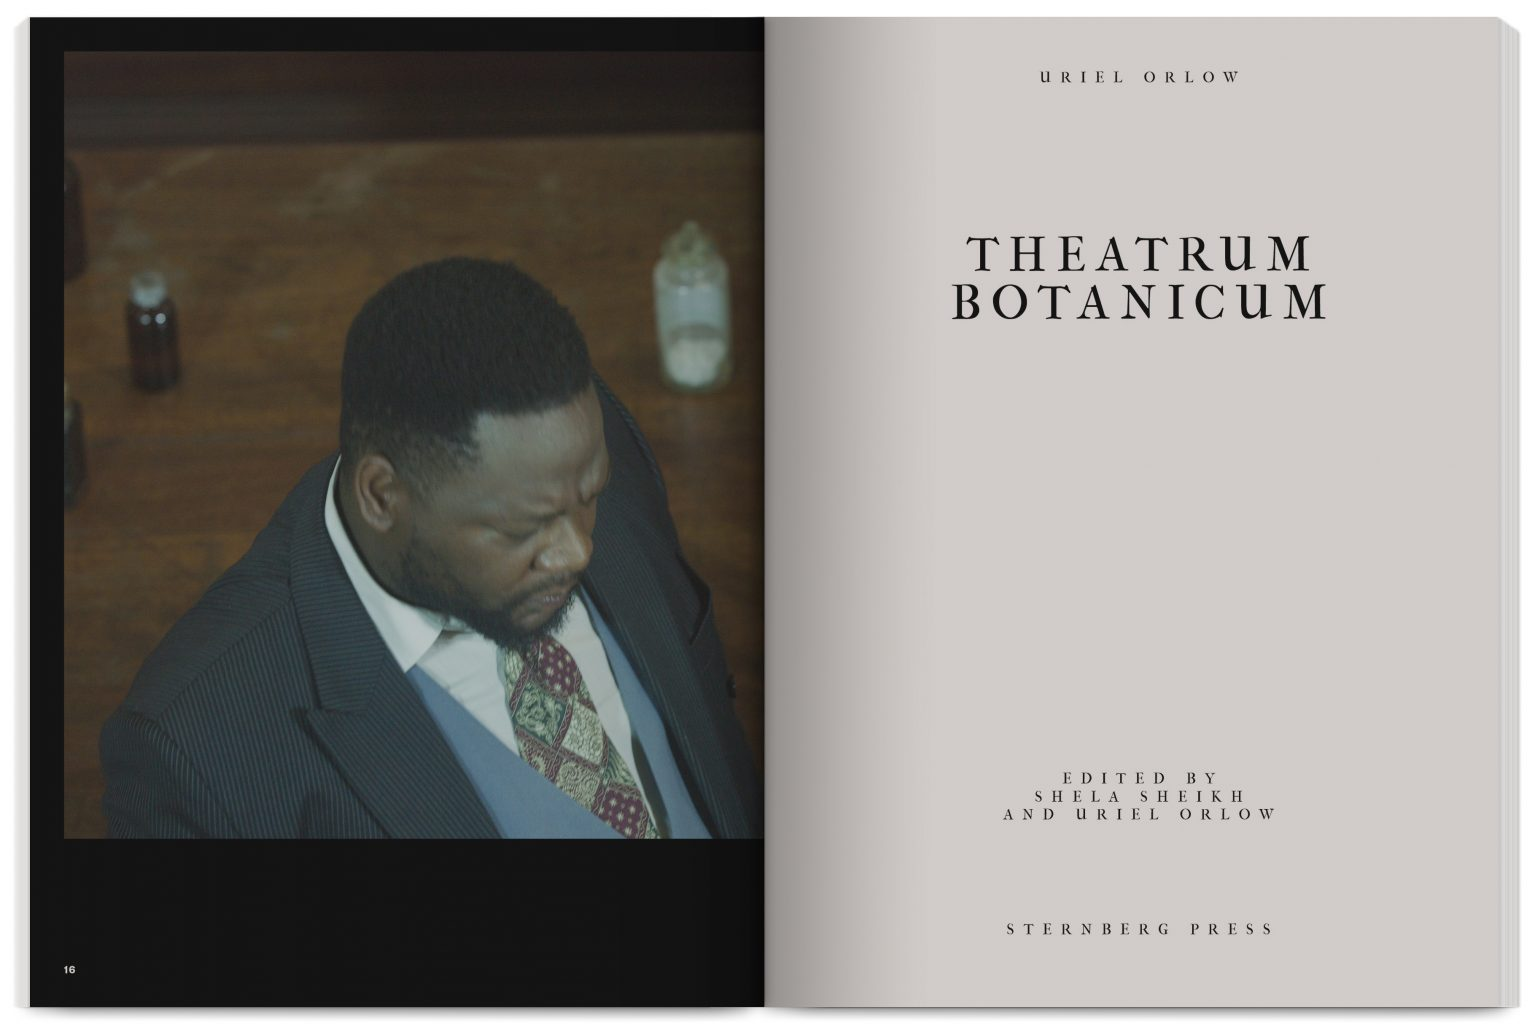 Publication Theatrum Botanicum edited by Uriel Orlow, Shela Sheikh, published by Sternberg Press, with The Showroom Gallery, designed by In the shade of a tree studio, founded by Sophie Demay and Maël Fournier Comte.